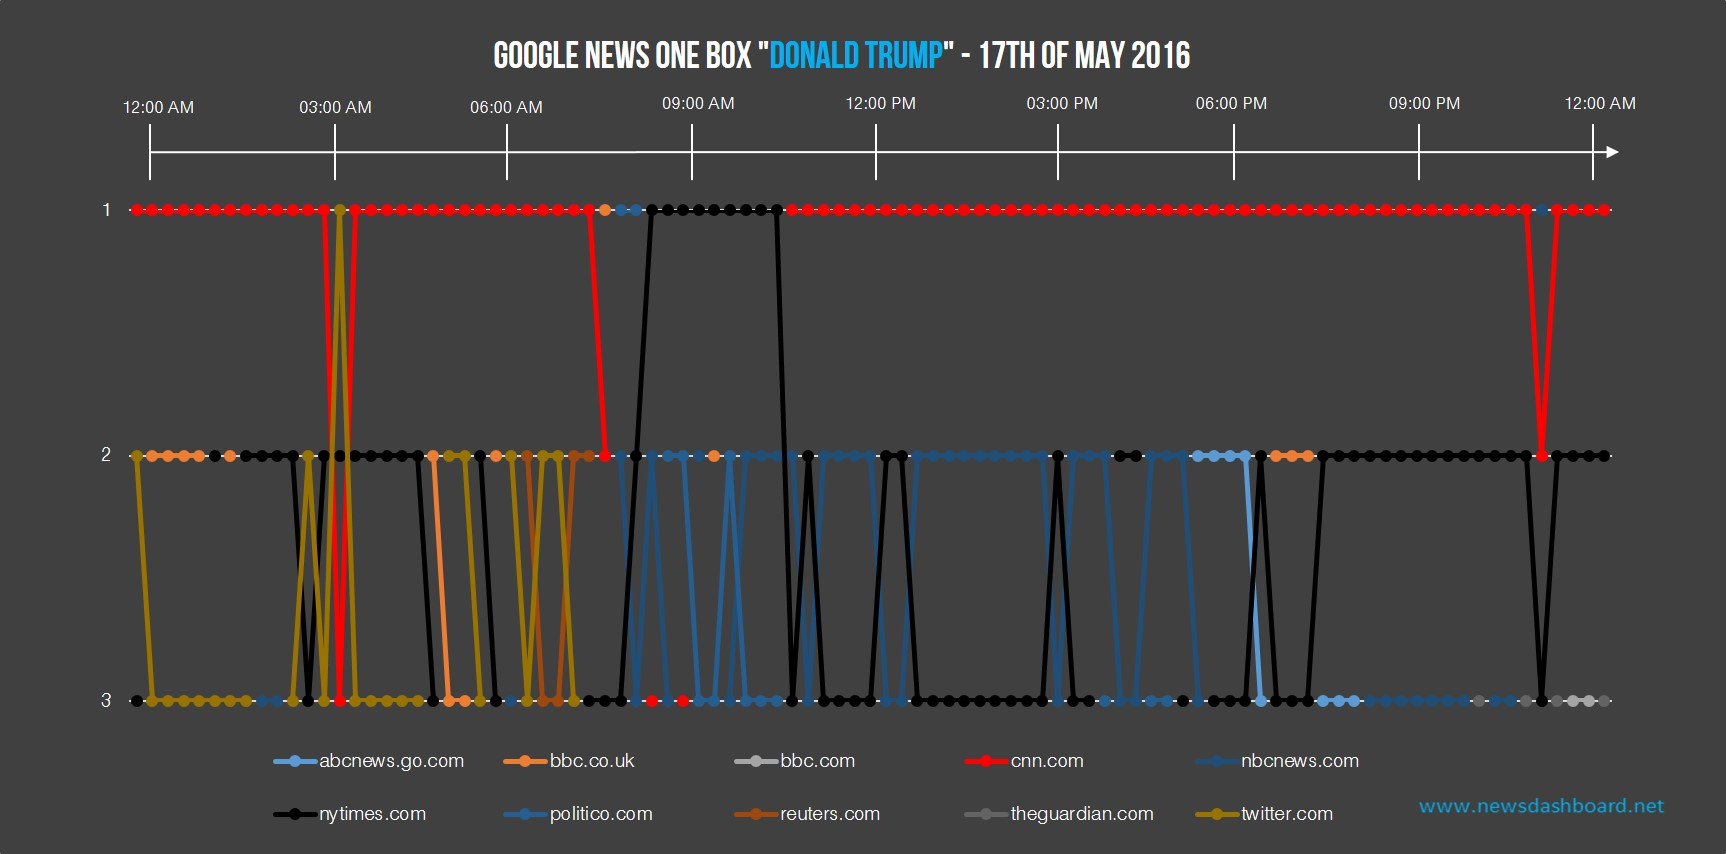 nytimes.com and nbcnews.com were also successful in the Google News One Box.